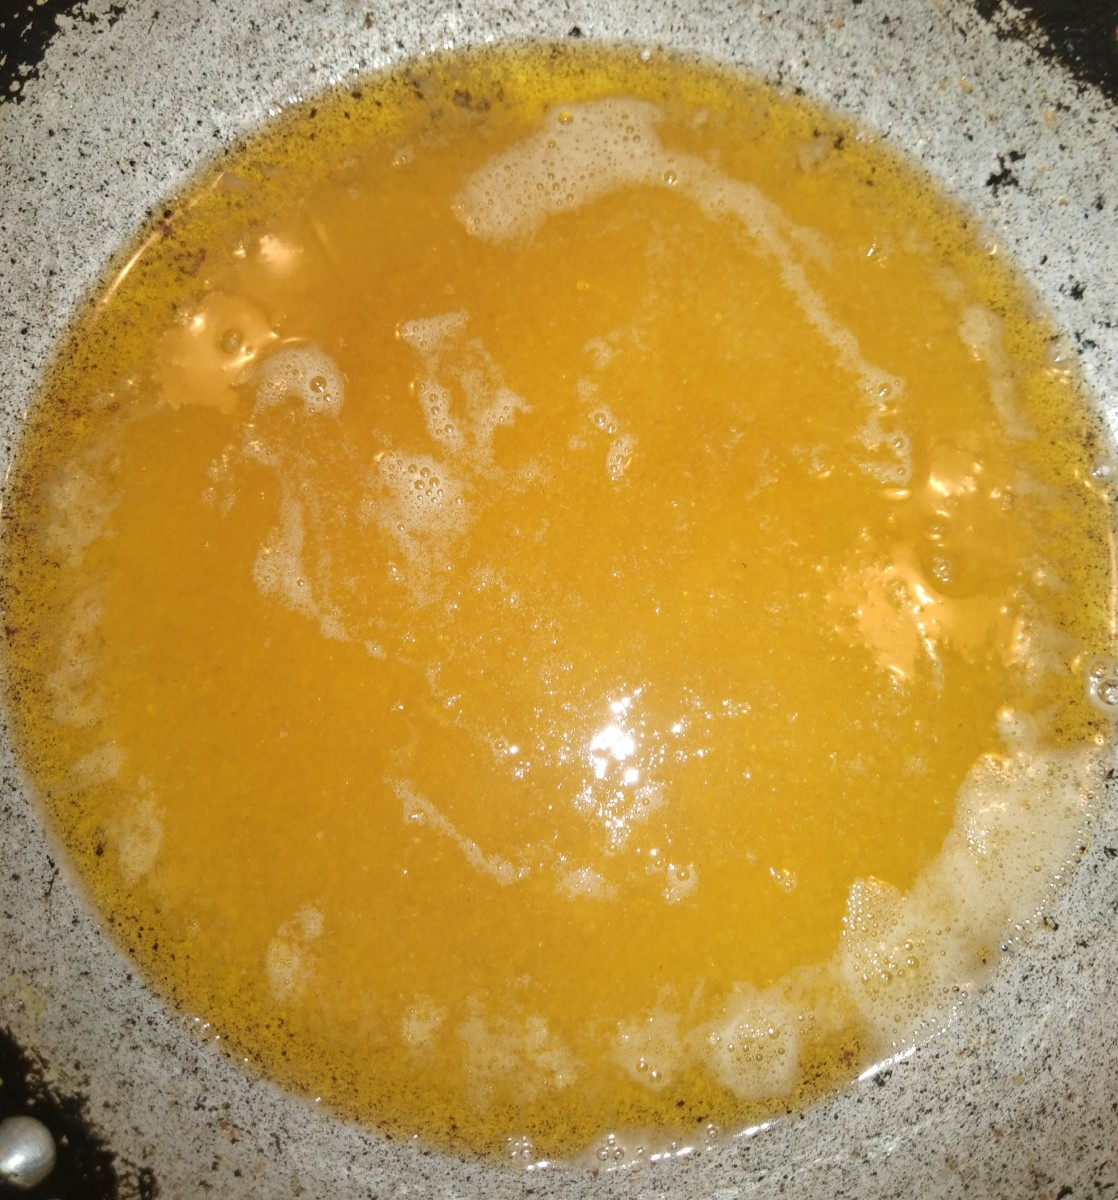 Add 3/4 cup of ghee to a pan and heat it over medium flame for 2-3 minutes.